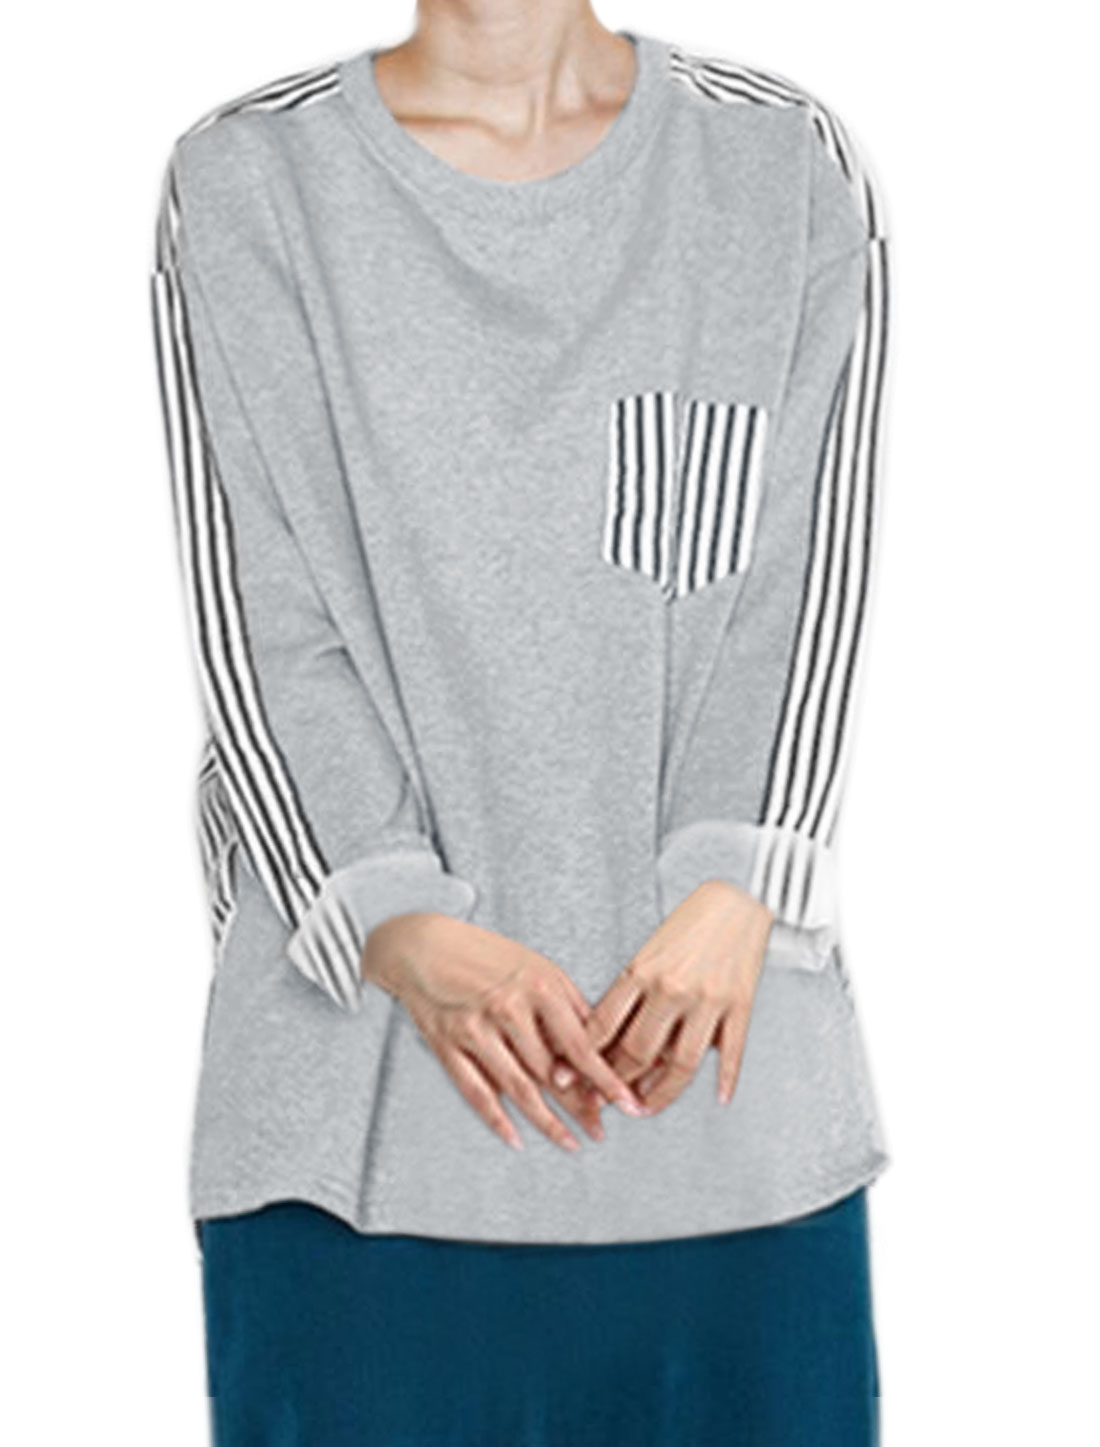 Women Long Sleeves Chest Pocket Paneled Striped Top Gray XS